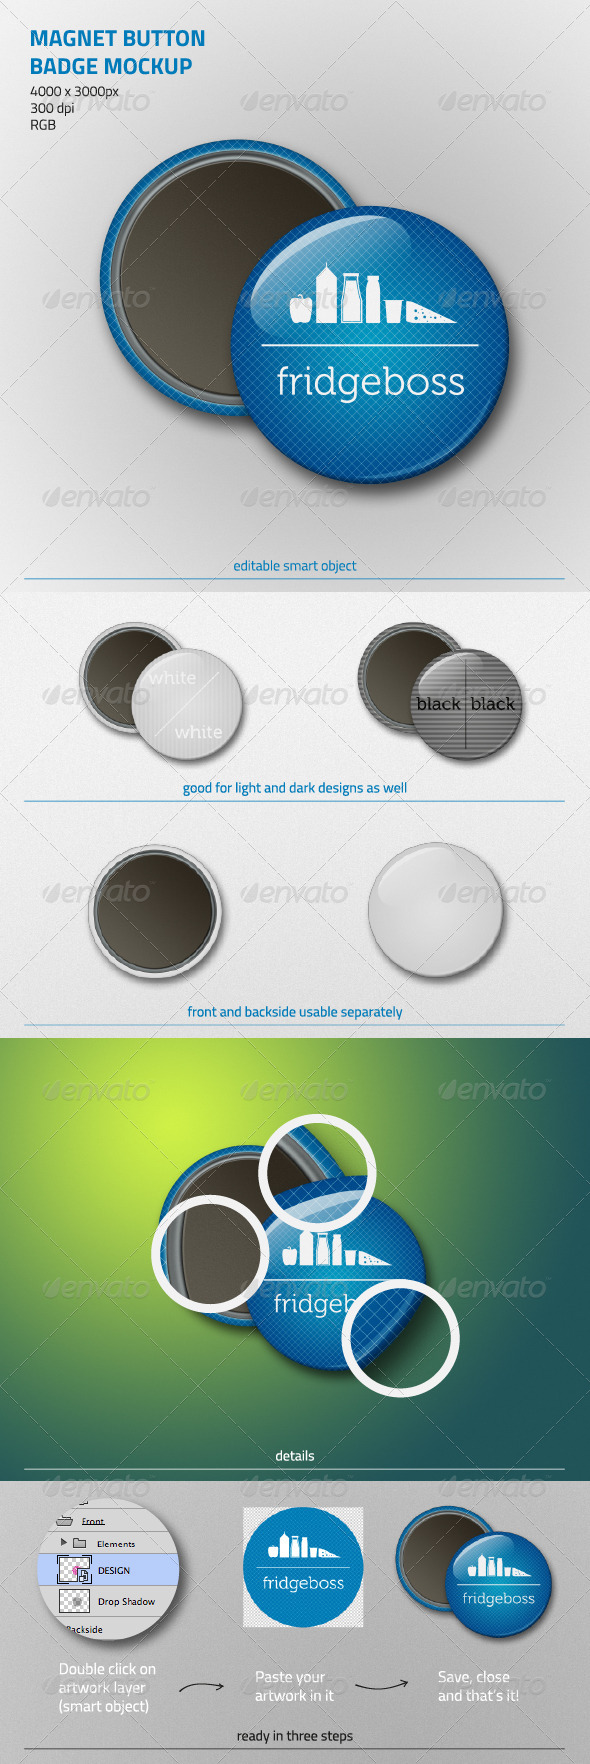 GraphicRiver Magnet Button Badge Mockup 5921552